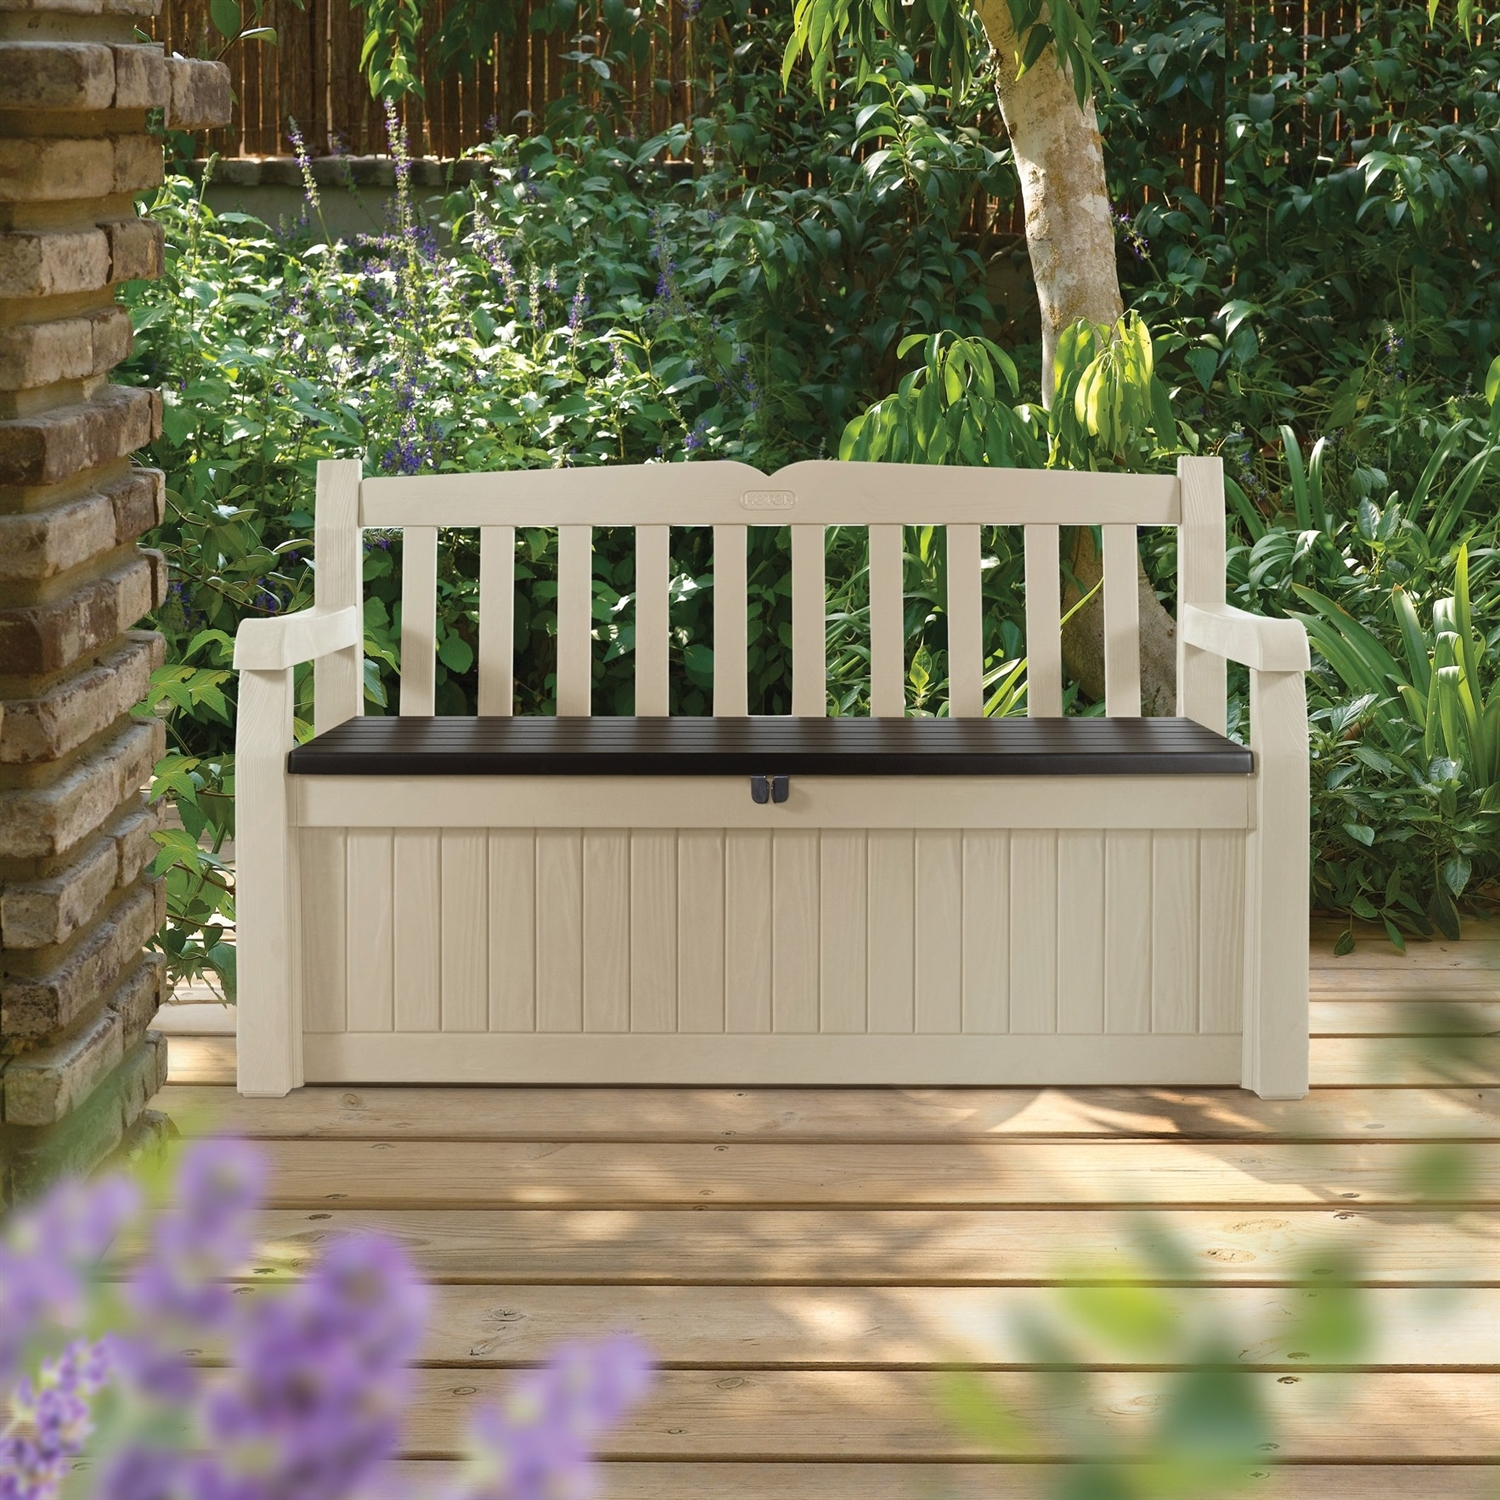 Beige Resin Eco-Friendly 70-Gallon Outdoor Garden Bench Deck Box, KE70GDB112 :  This Beige Resin Eco-Friendly 70-Gallon Outdoor Garden Bench Deck Box would be a great addition to your home. It is ideal for all your storage needs, indoors or out. Garden bench box; Comfortably seats two adults; Lockable, attractive styling, beautiful design; Keeps contents dry and ventilated; Will not rust, dent, or peel; Material: Resin; Assembly Required: Assembly required; Product Warranty: 2 Years; Finish: Beige; Lock Mechanism: Yes; Hinged Top: Yes; Armed: Yes; Storage Capacity: 70 Gallons.